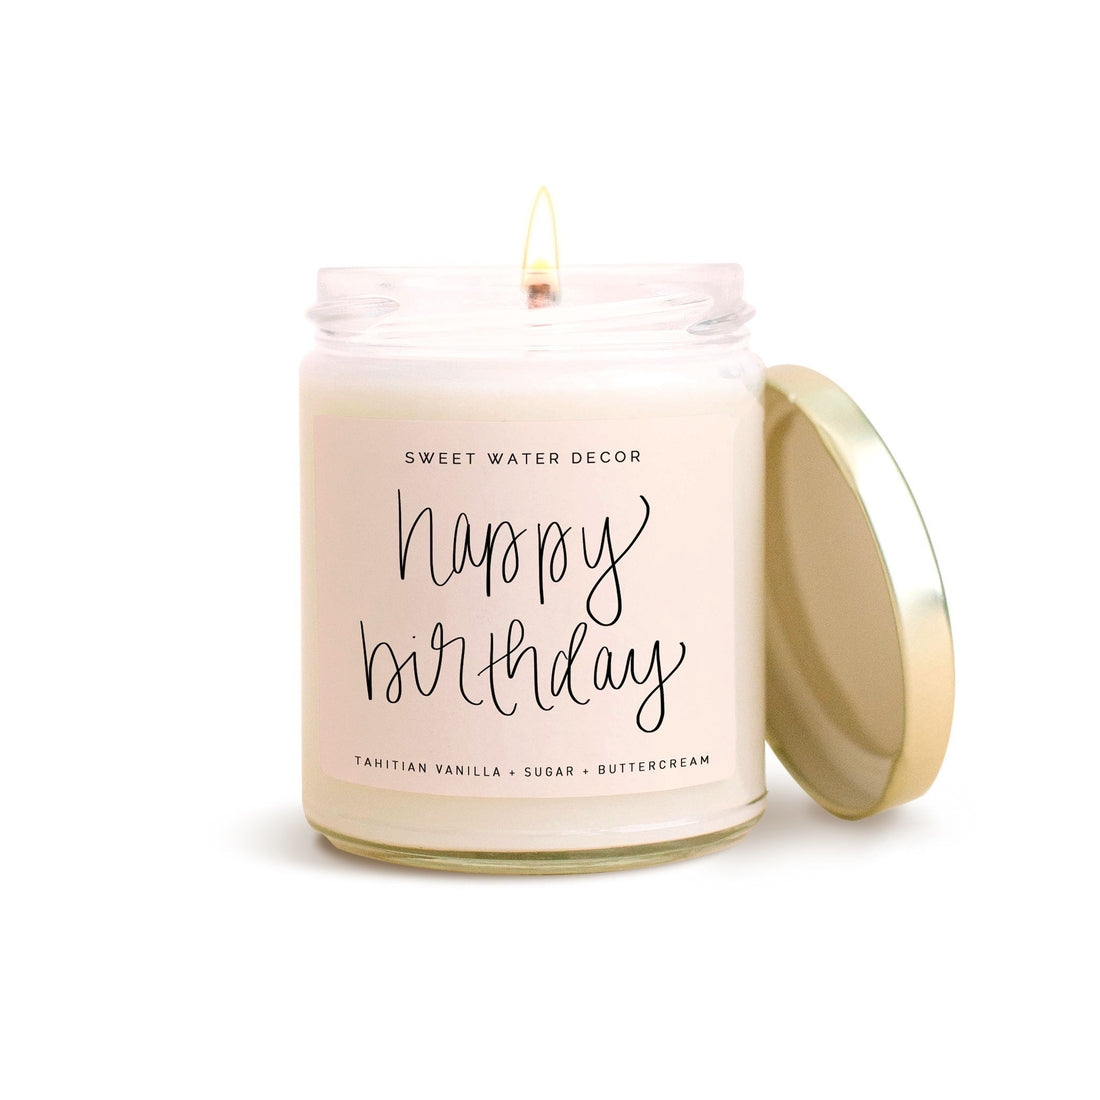 Sweet Water Decor Candles